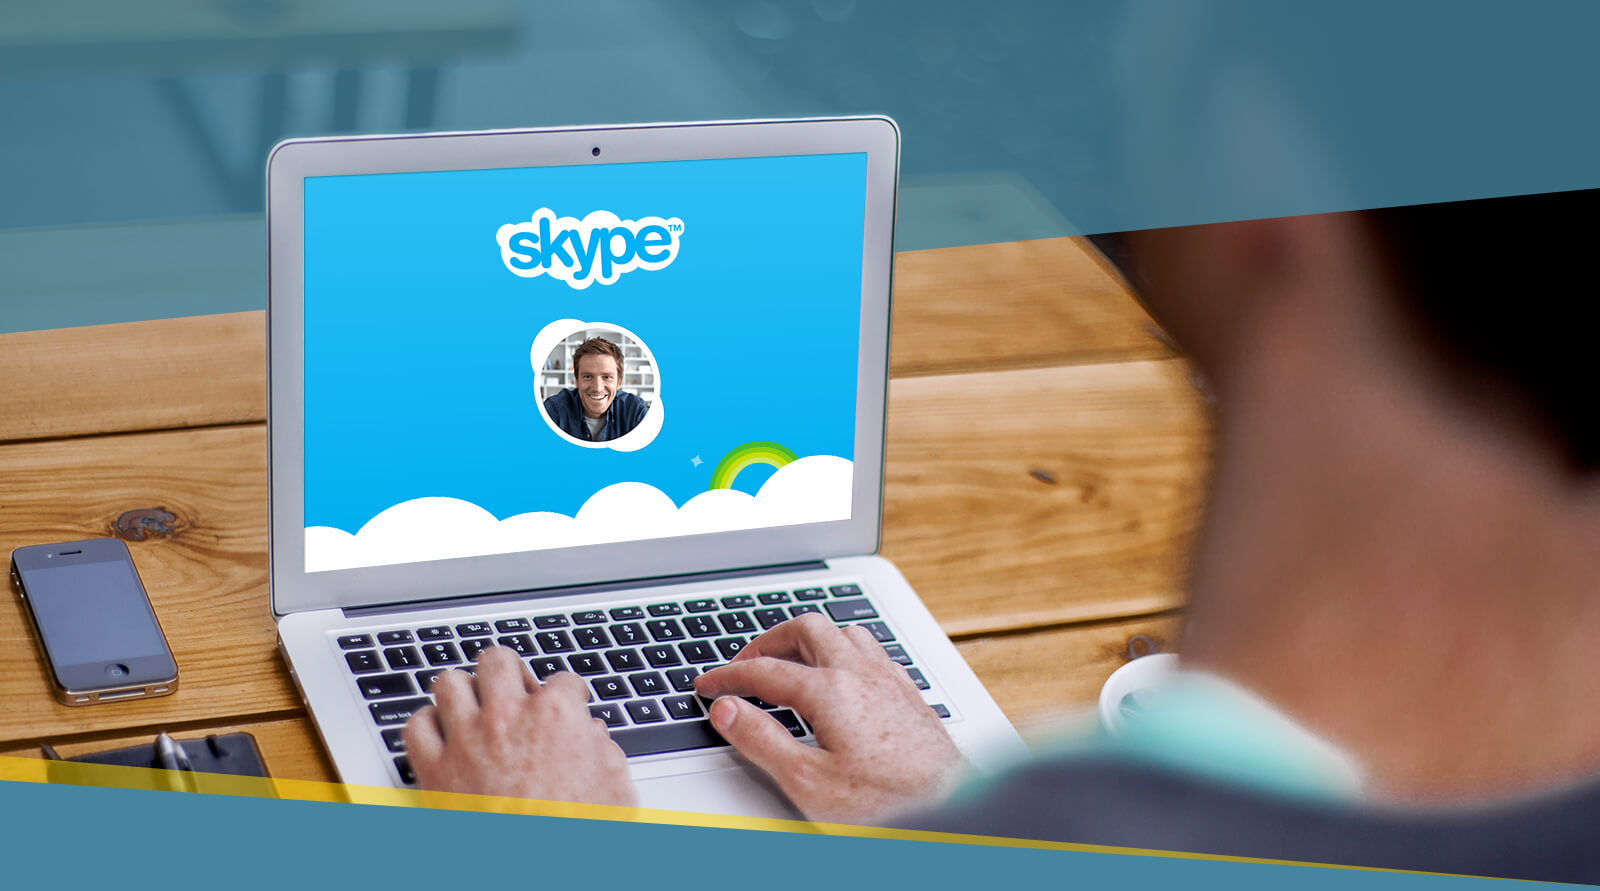 Remote counselling or coaching via Skype